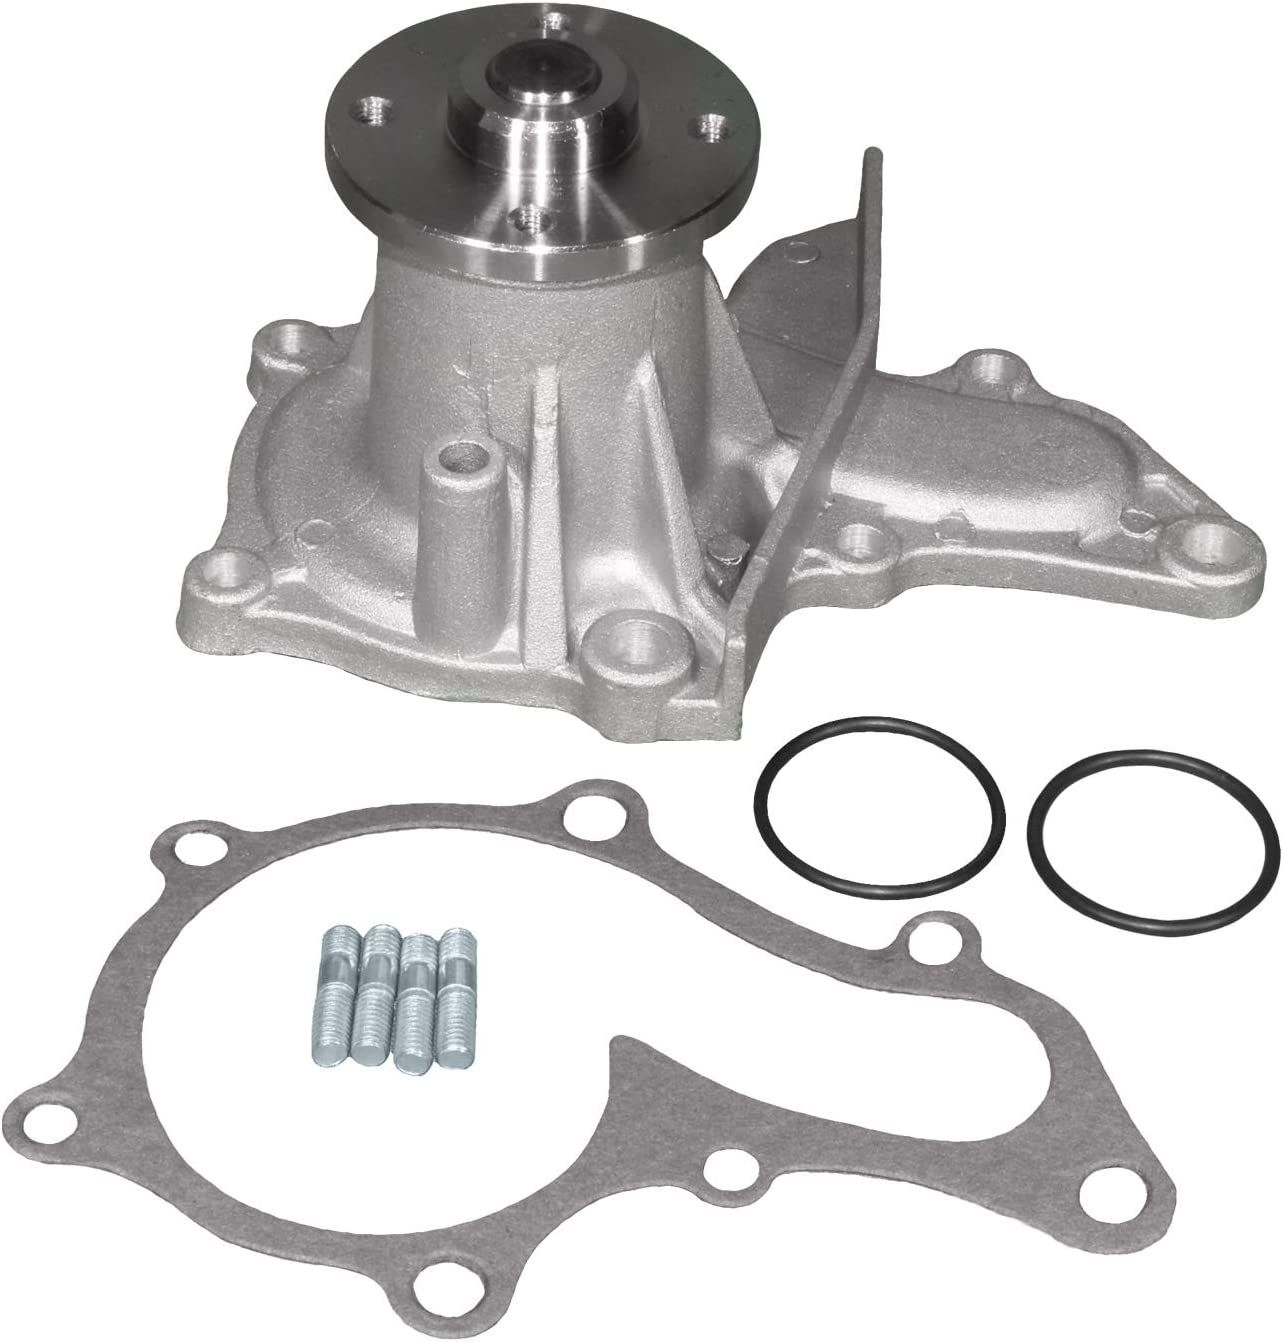 ACDelco 252-903 Professional Water Pump Kit